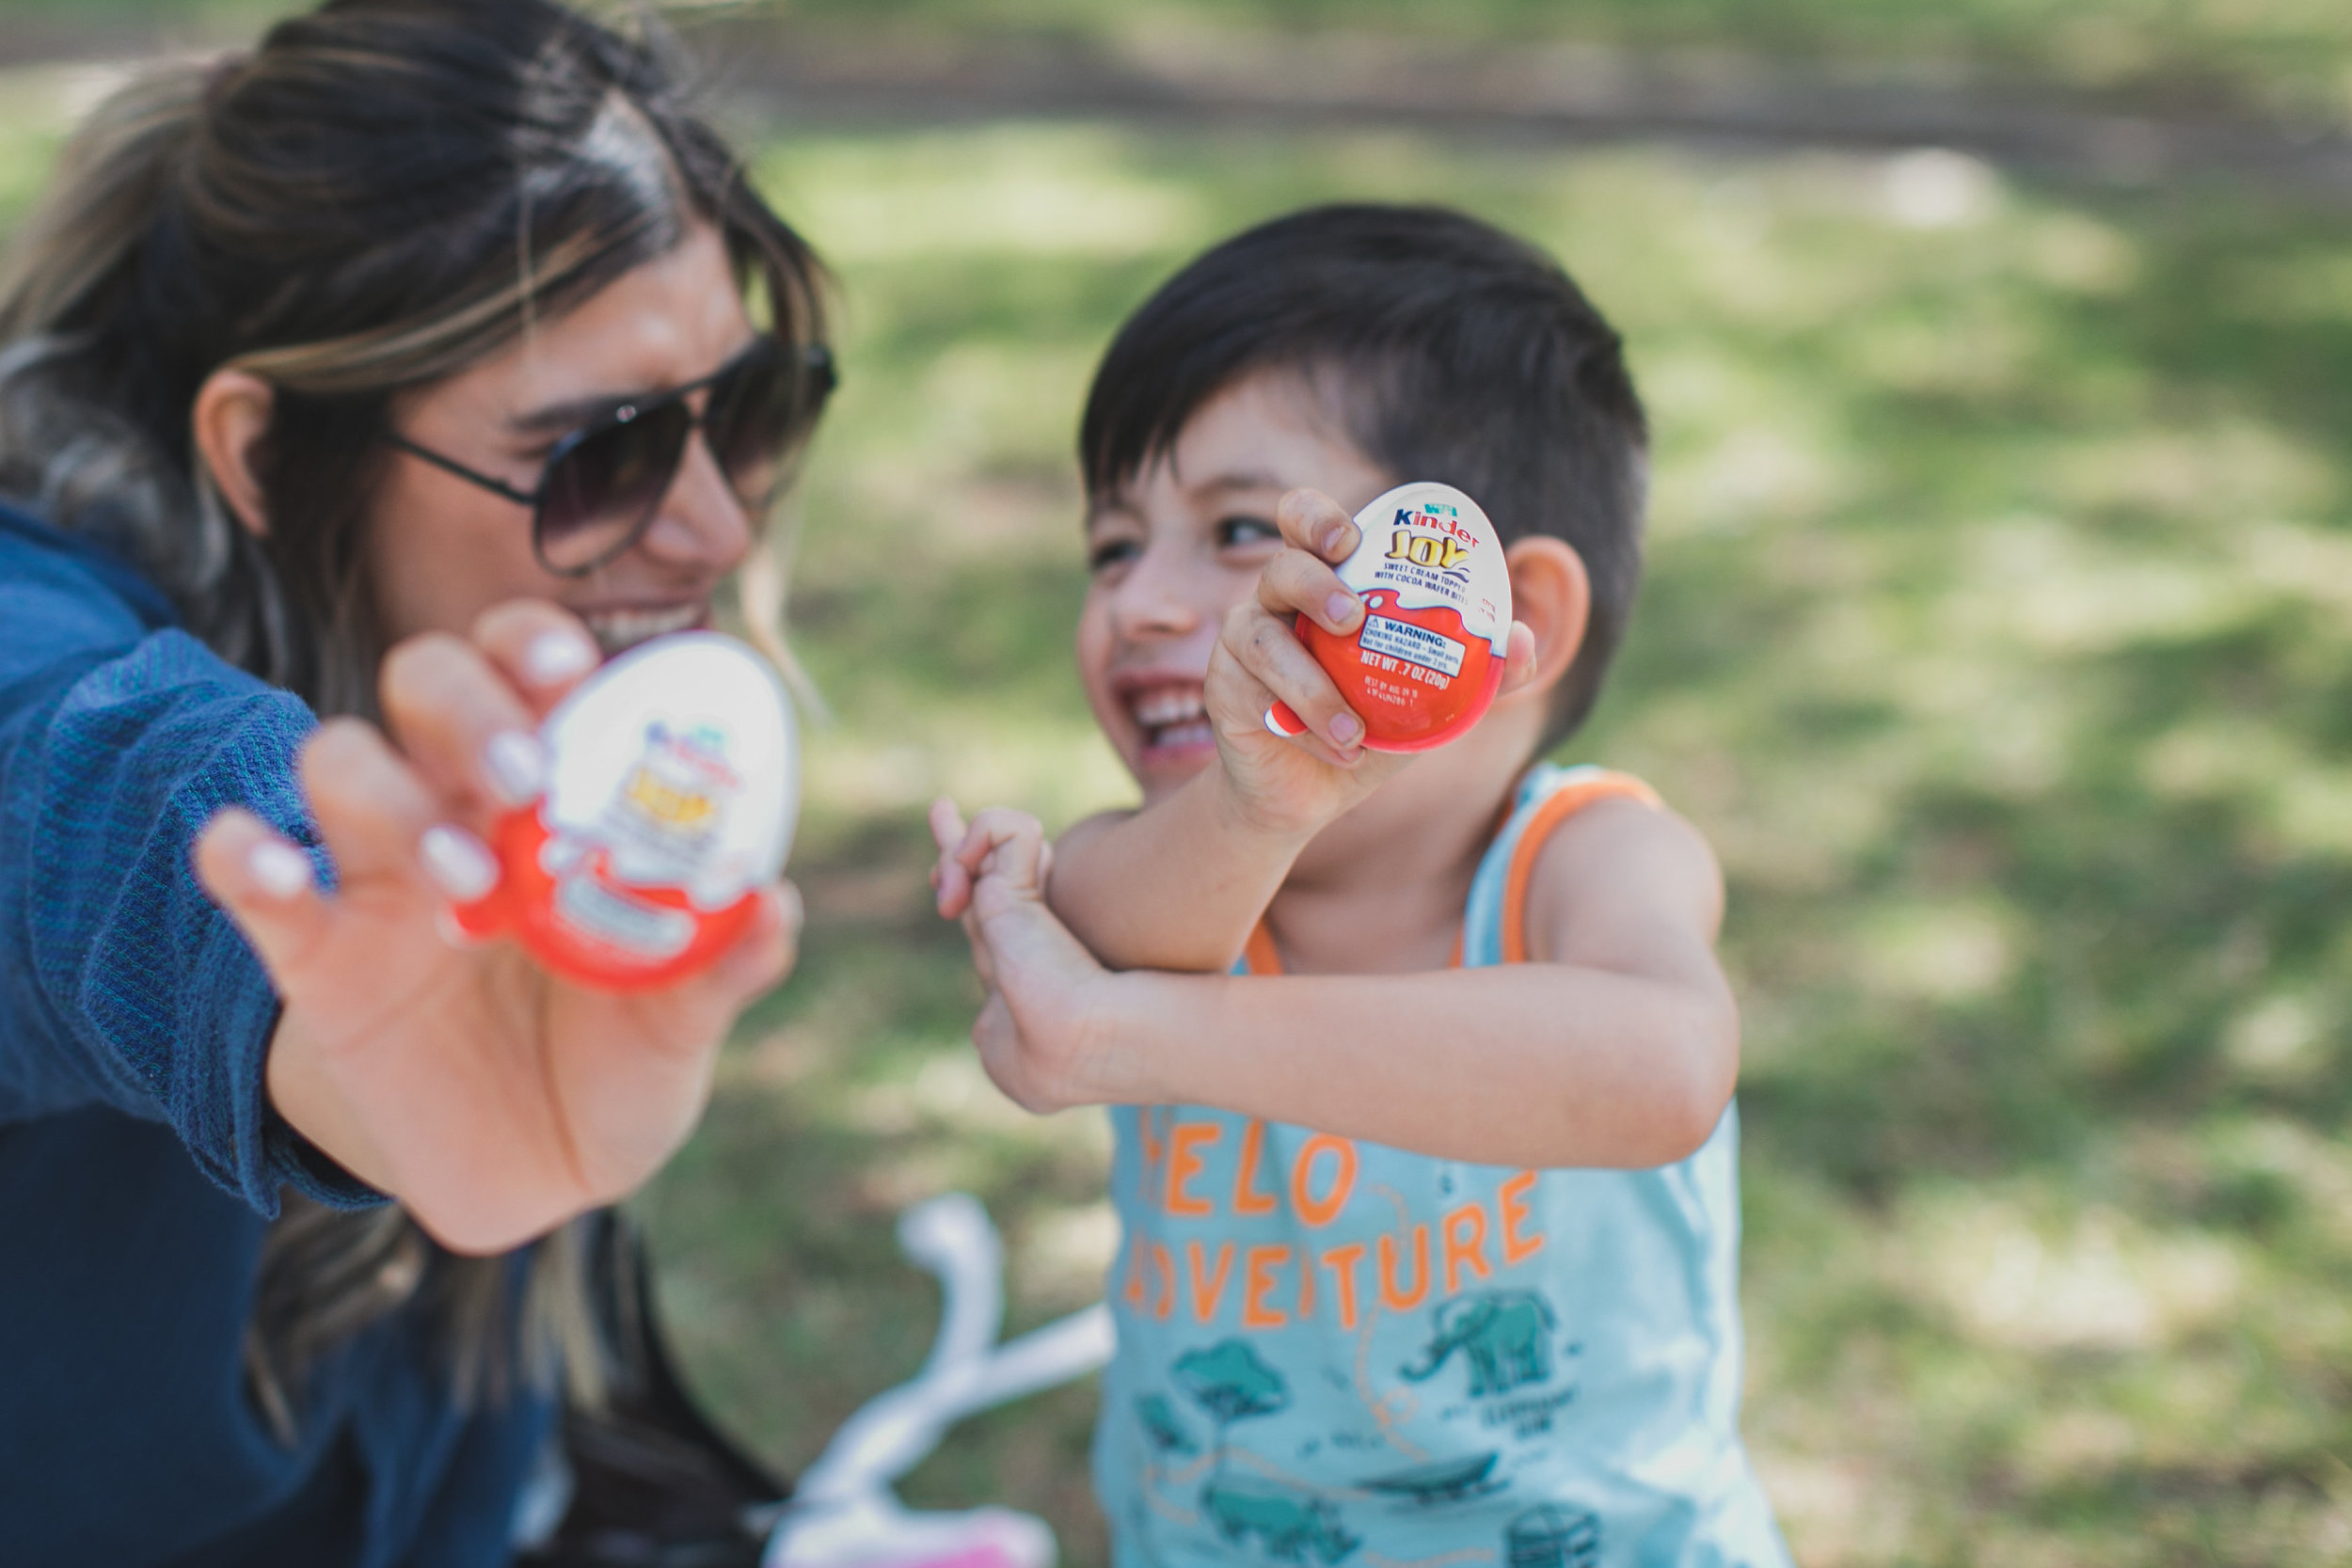 Bricia_Lopez_Kinder_Eggs_Lily_Ro_Photography-38.jpg